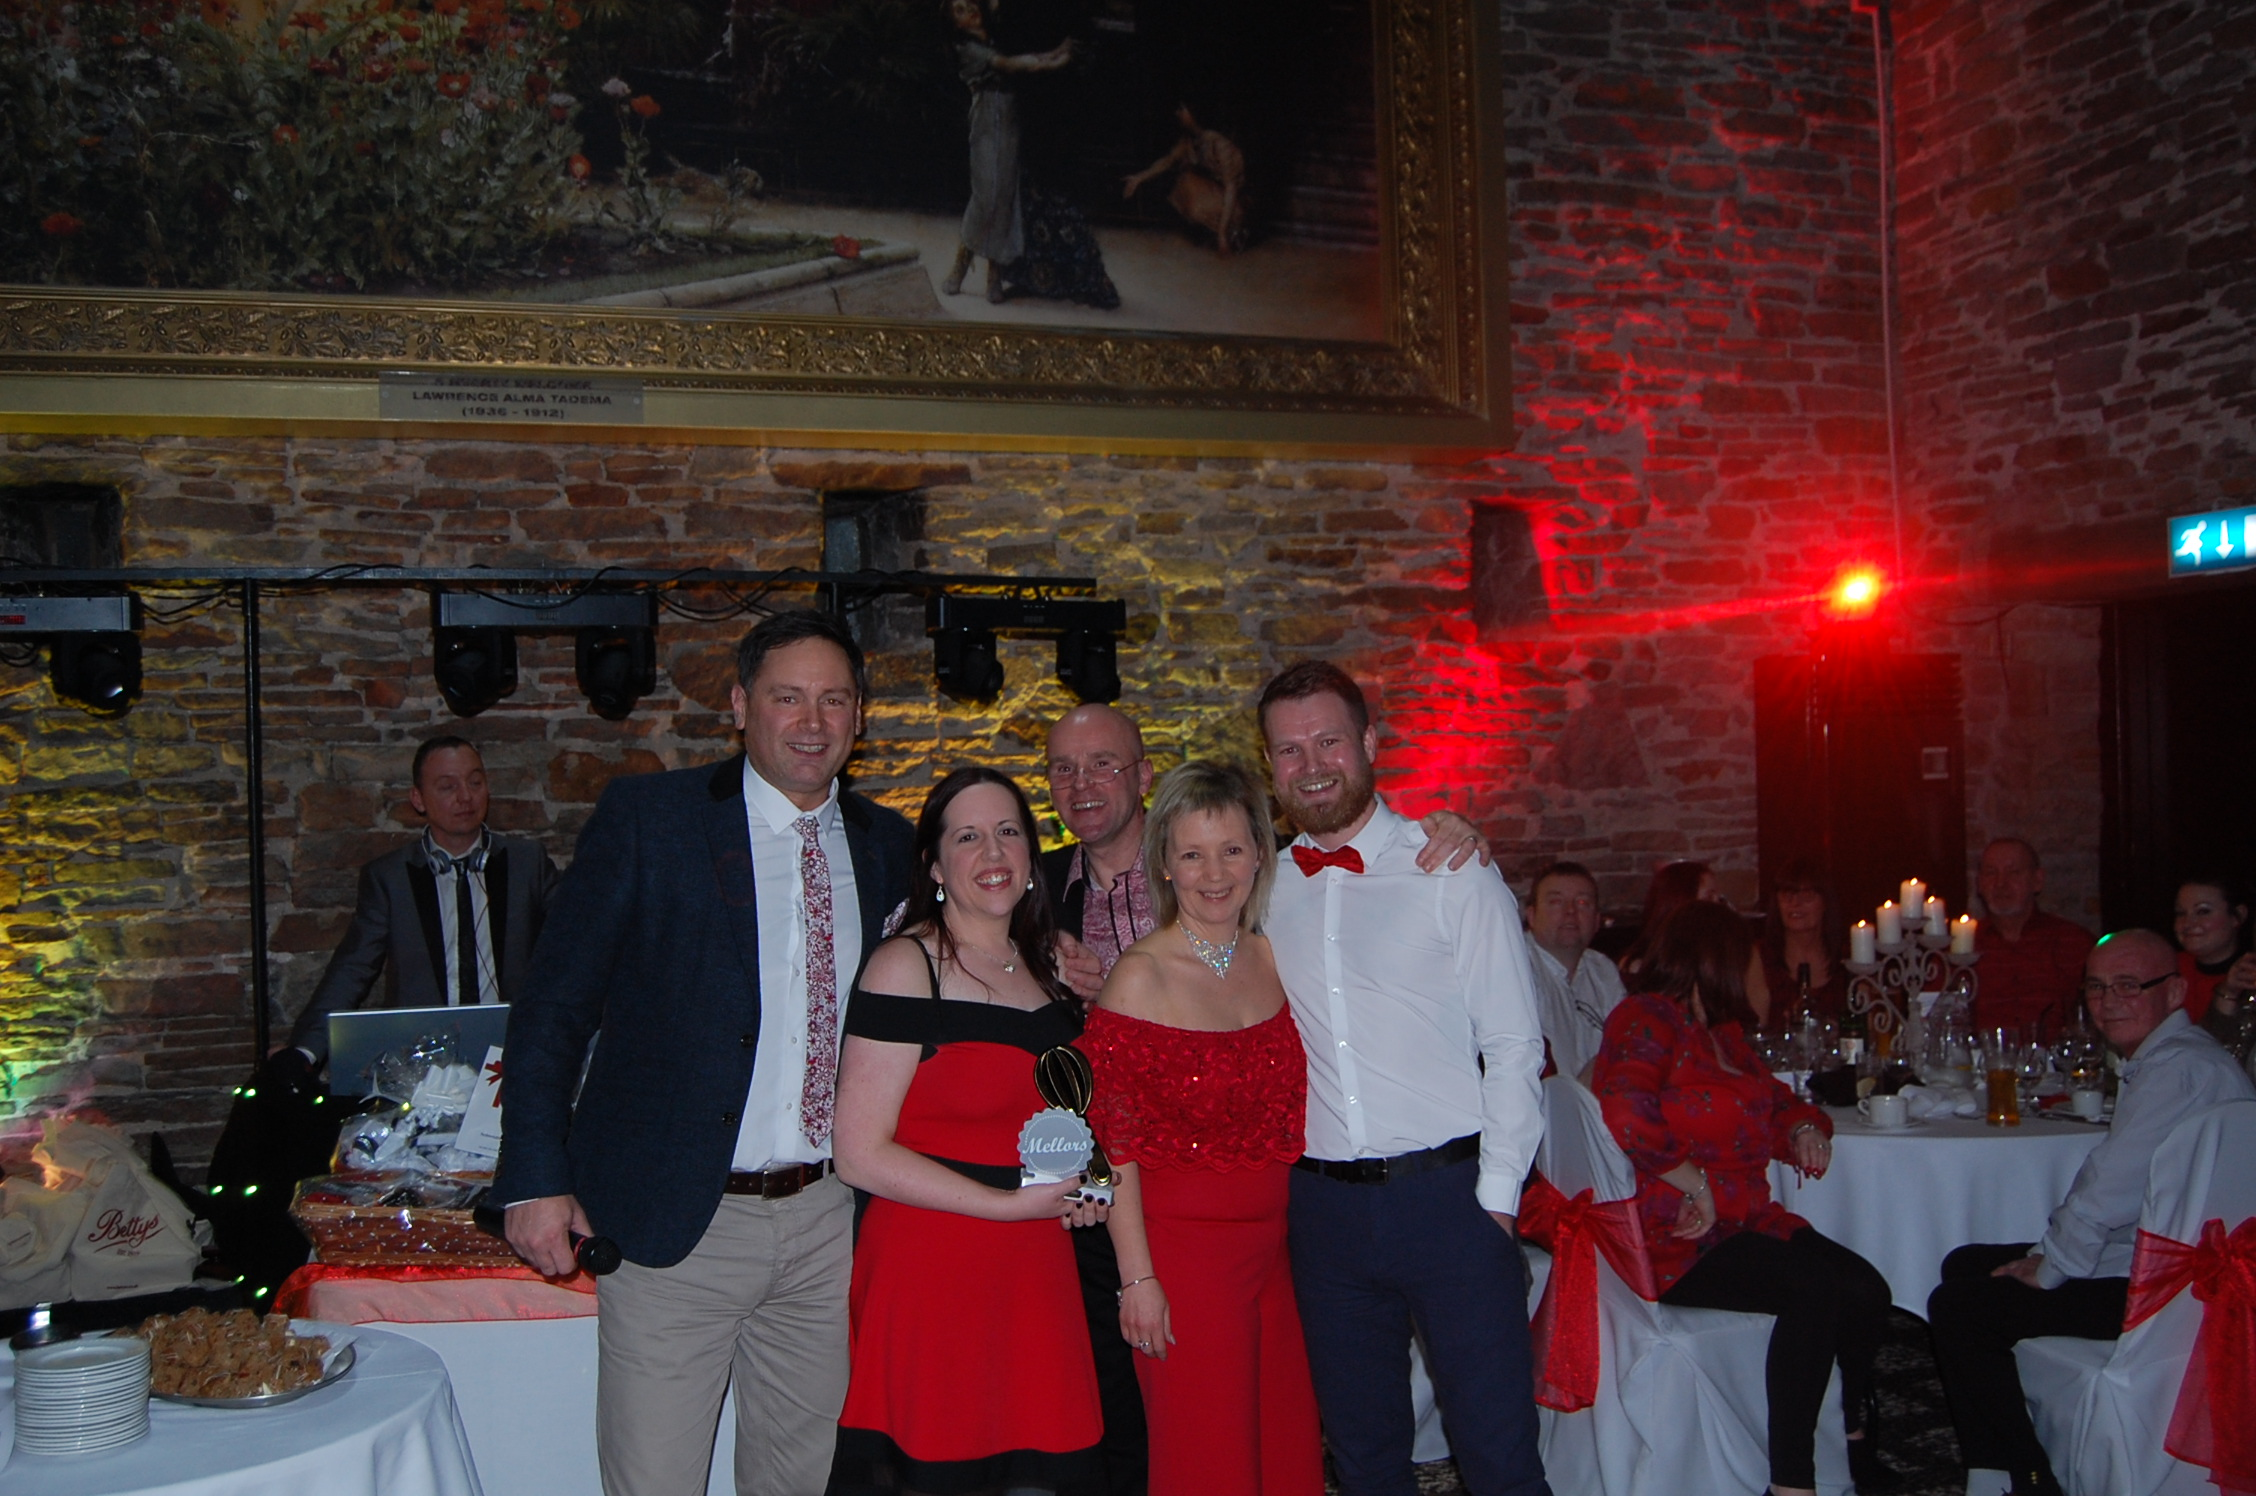 The Golden Whisk Winners 2017 receiving their awards